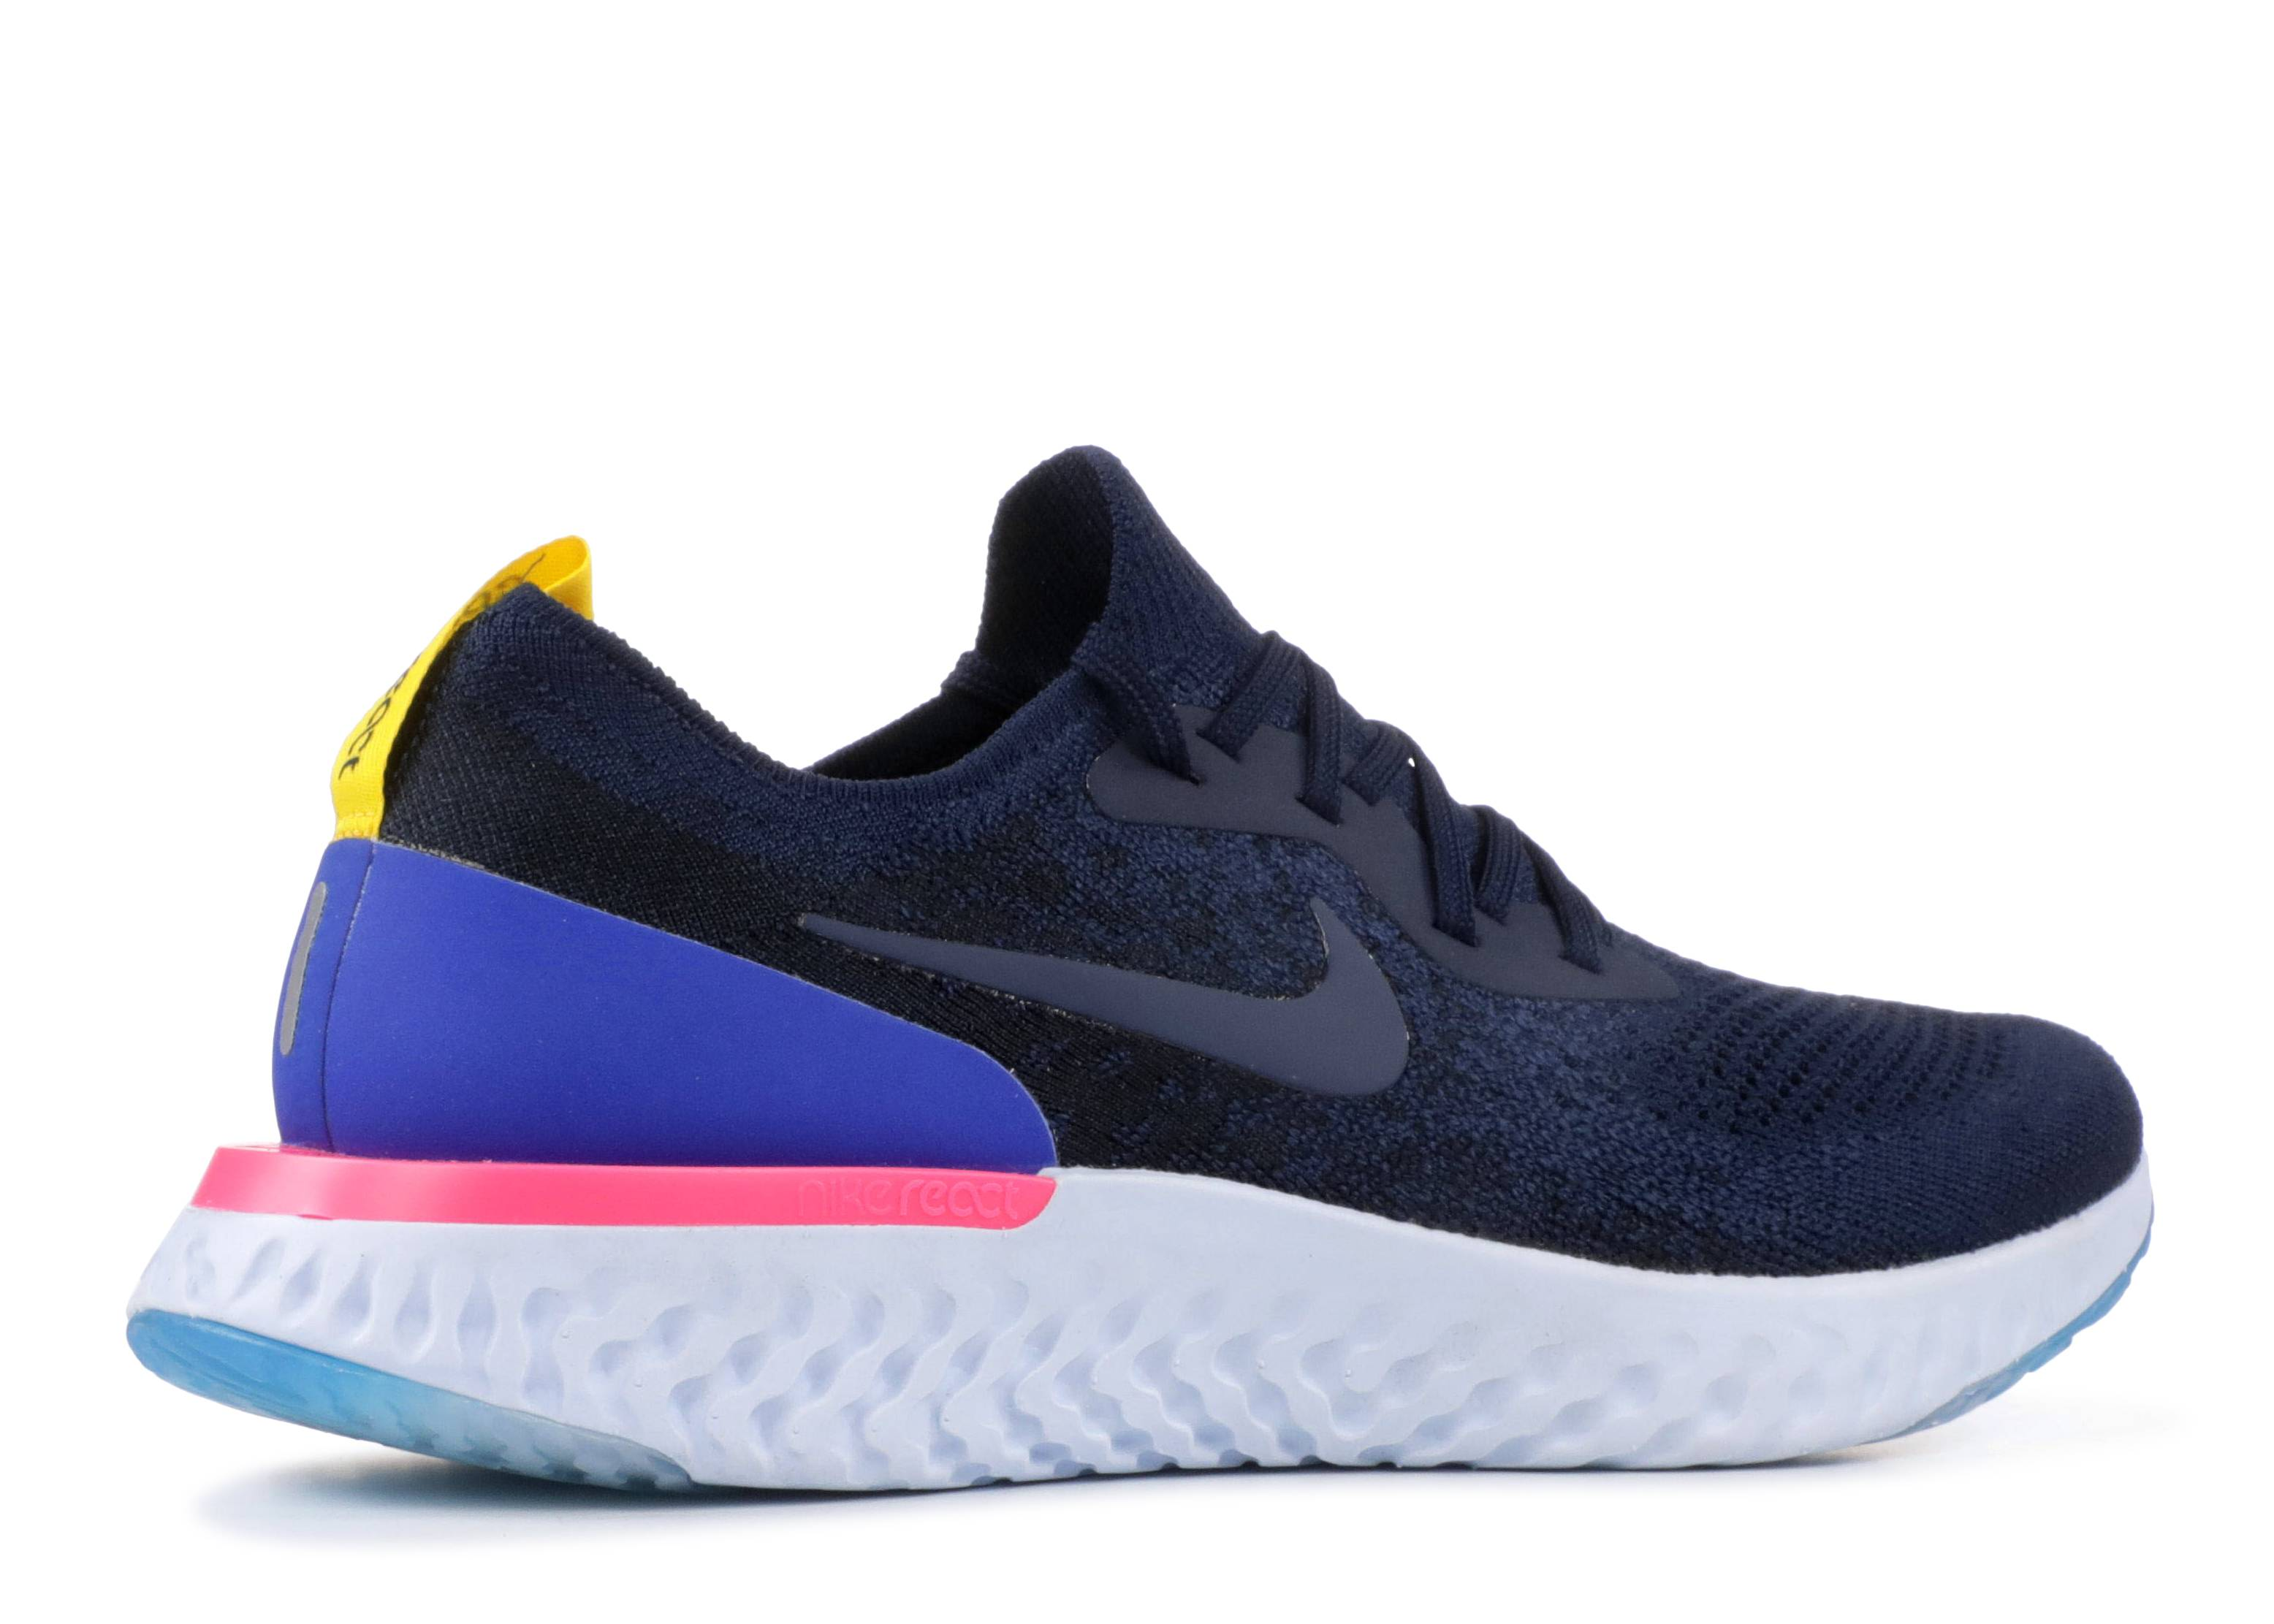 af9a2ed9c9e4c Wmns Nike Epic React Flyknit - Nike - aq0070 400 - college navy college navy